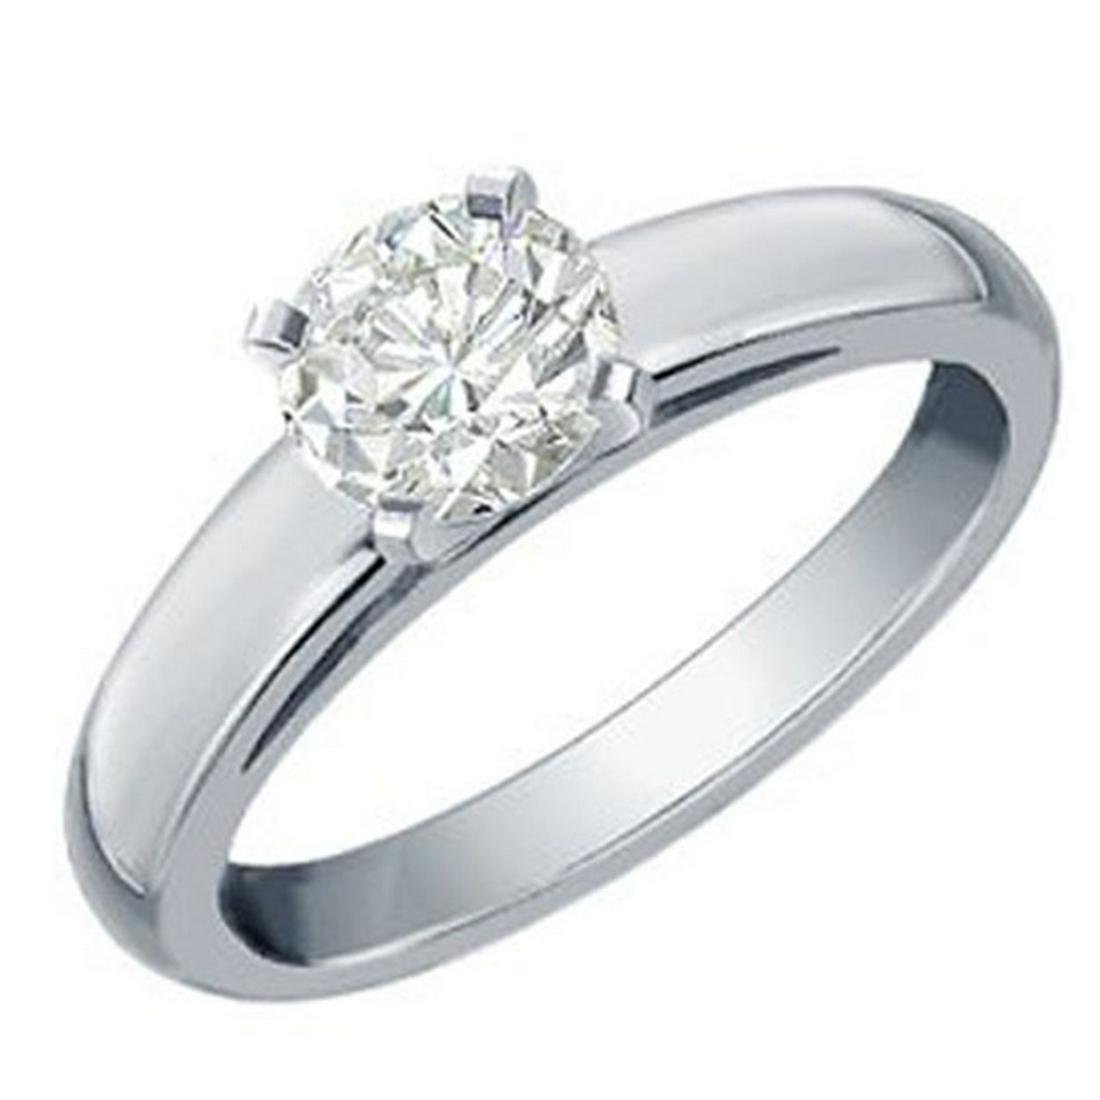 1.25 ctw VS/SI Diamond Solitaire Ring 18K White Gold